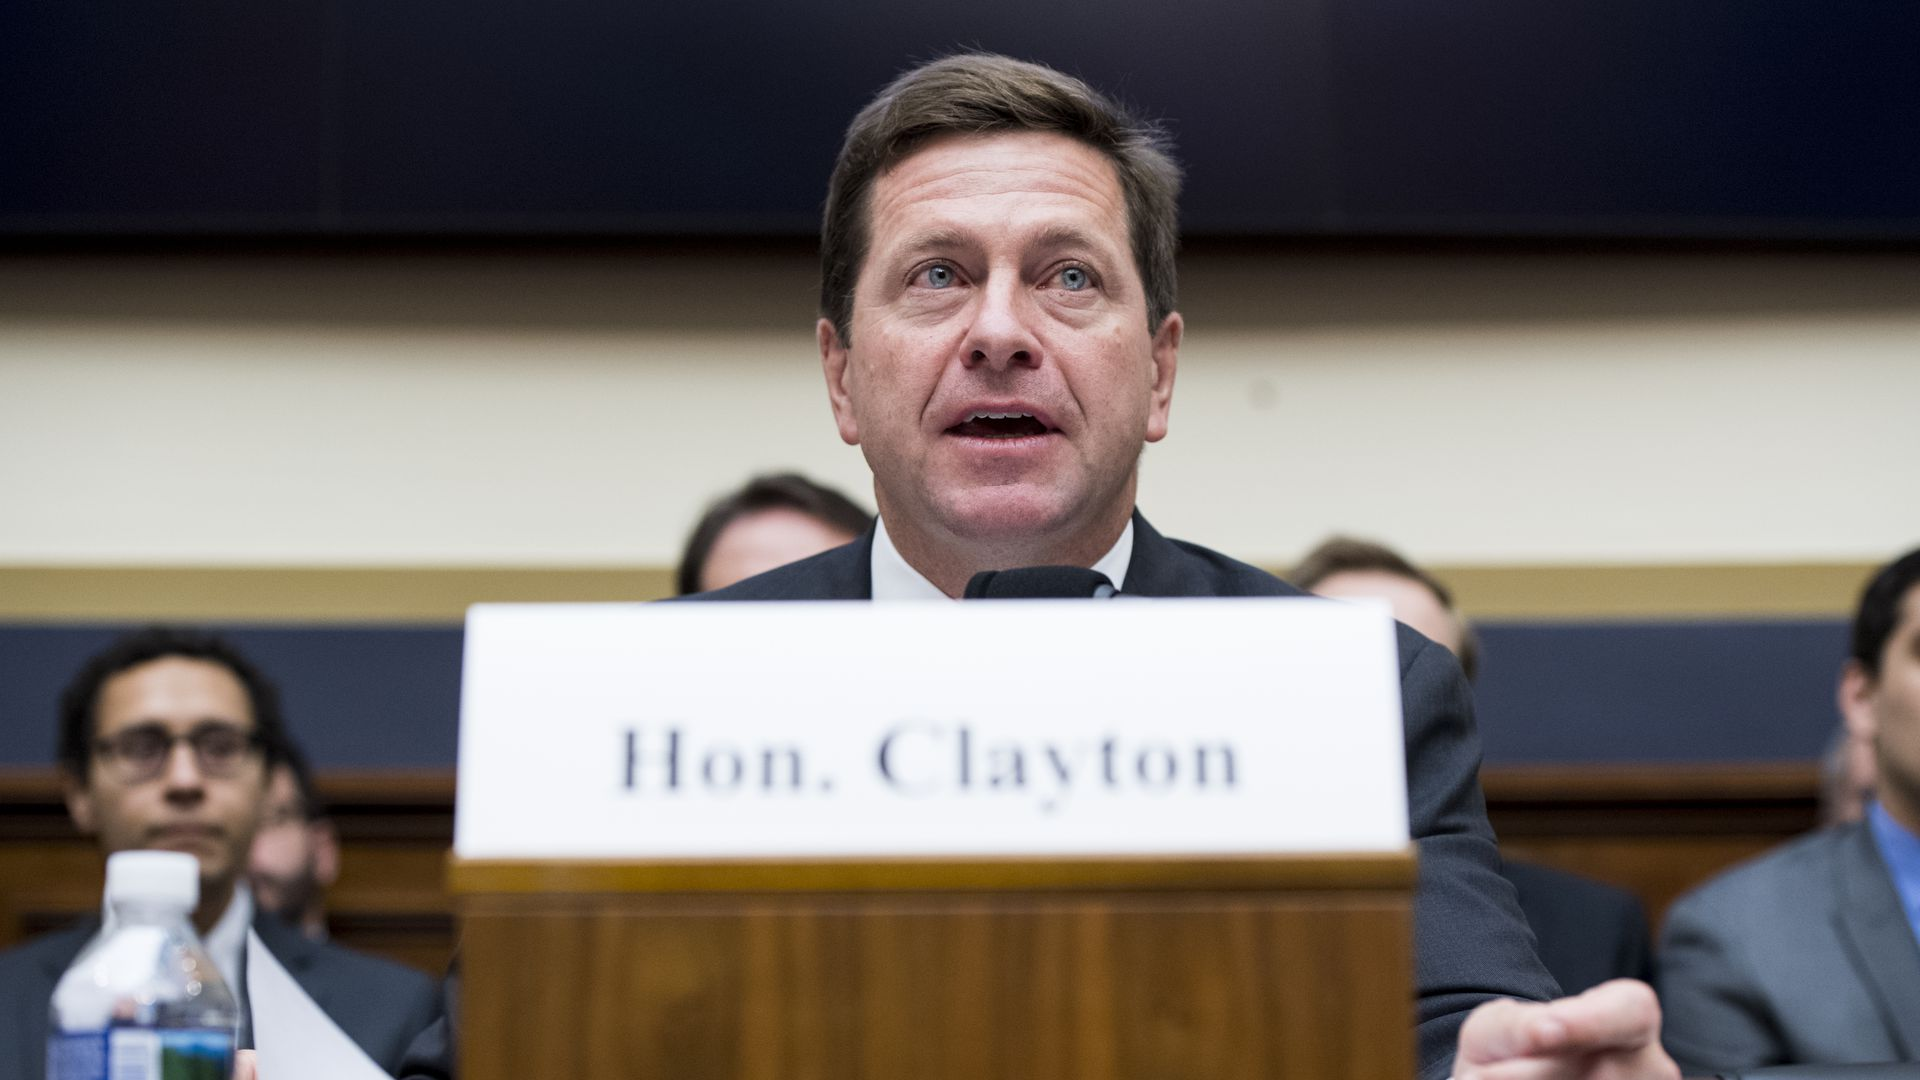 SEC chairman Jay Clayton testifying in front of Congress.